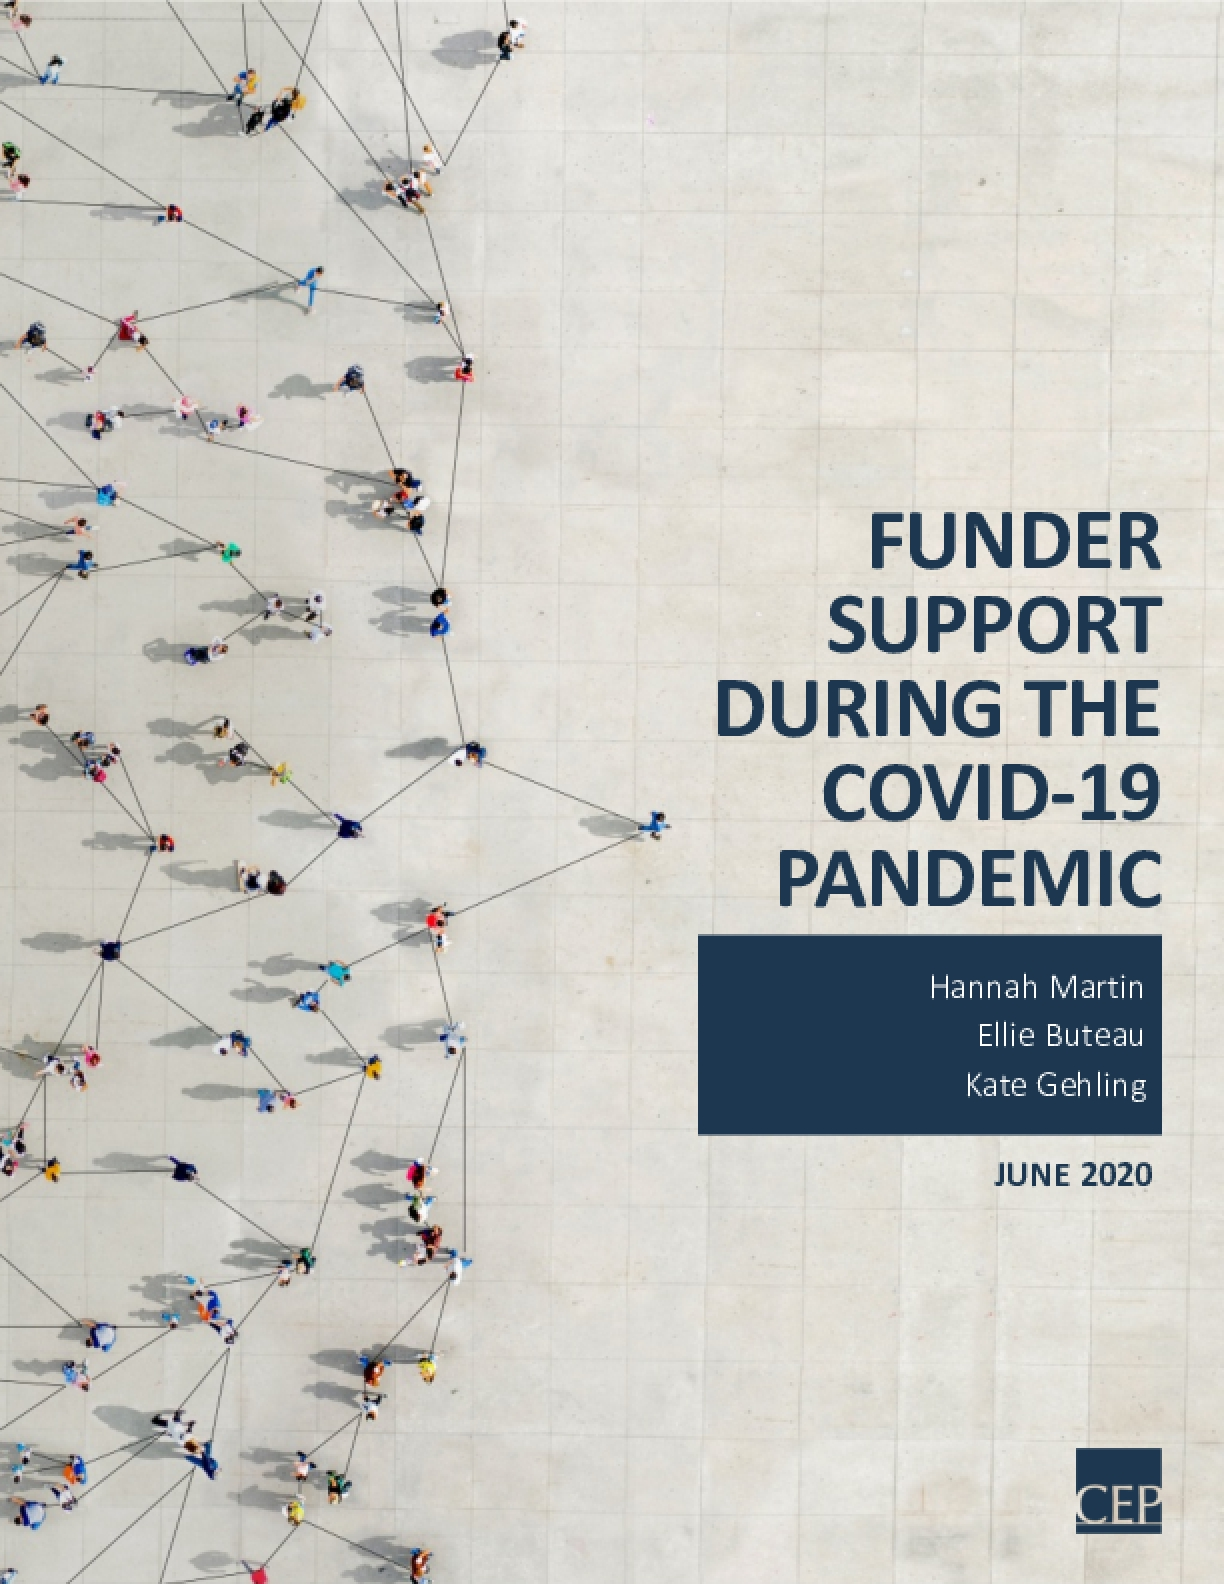 Funder Support During the COVID-19 Pandemic